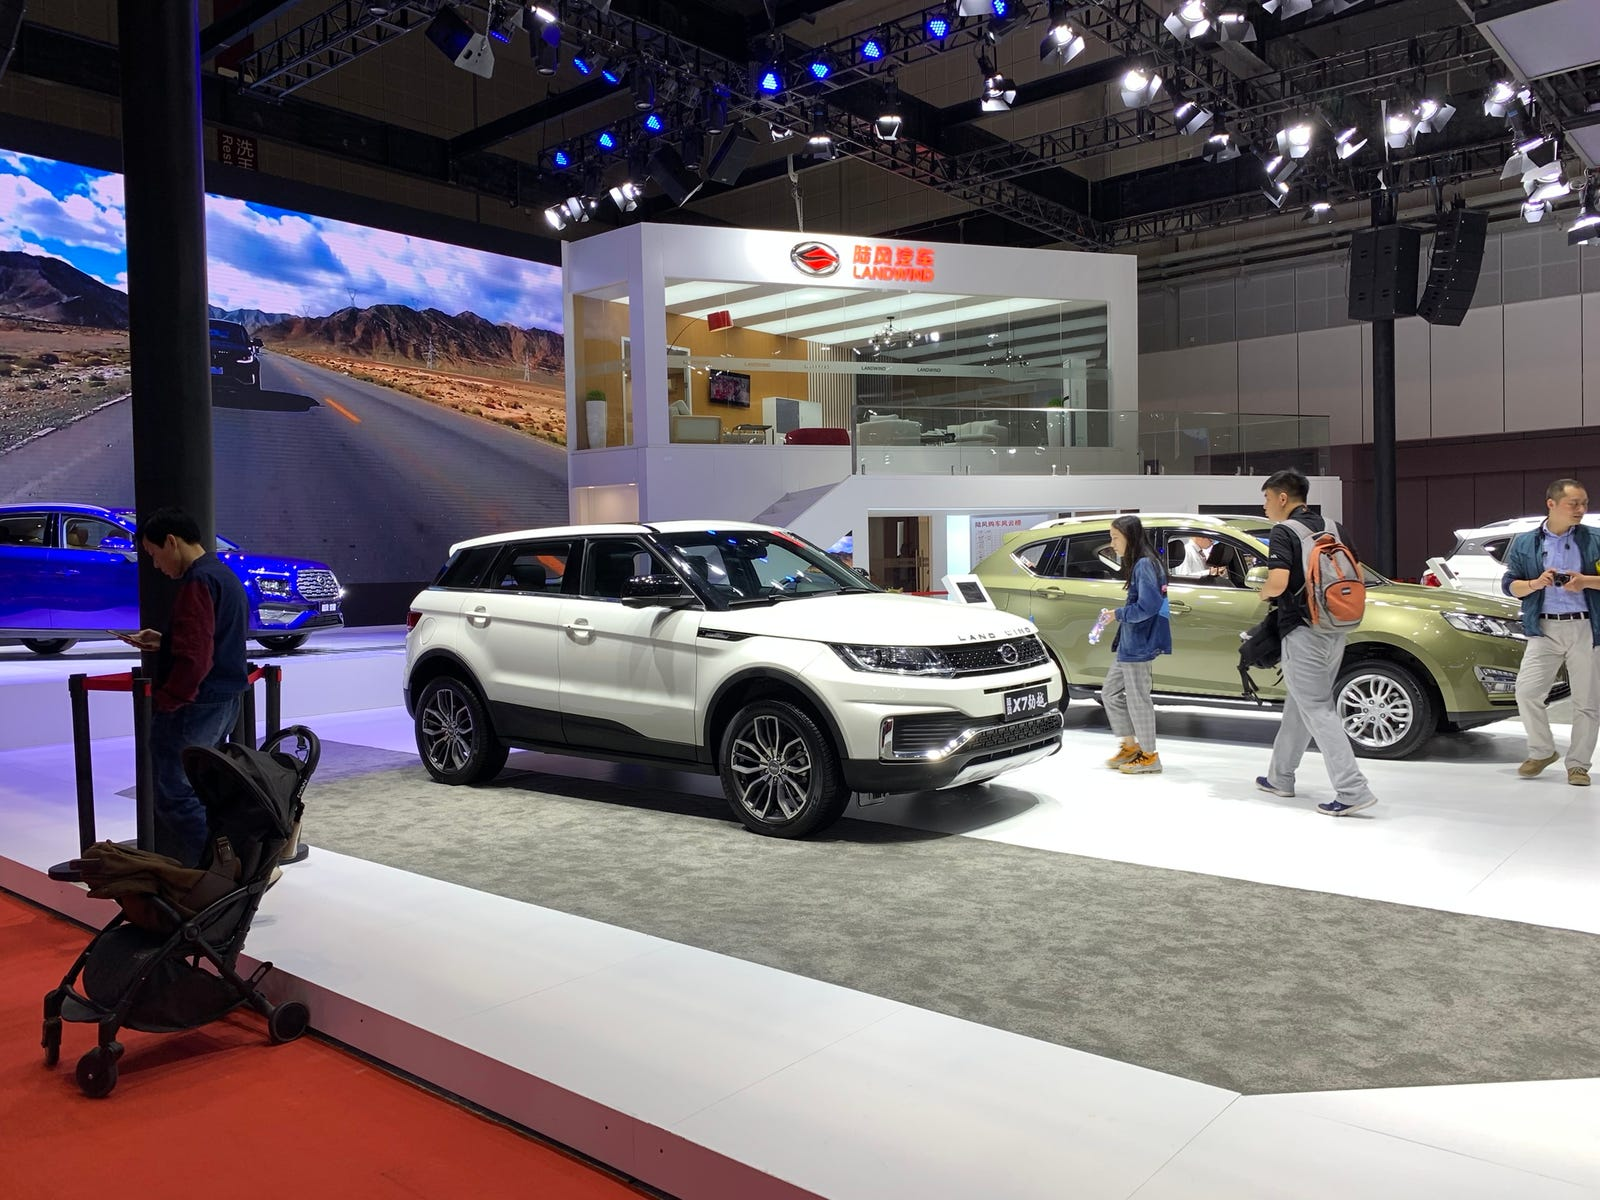 Illustration for article titled Banned Landwind X7 Displayed at 2019 Shanghai Auto Show